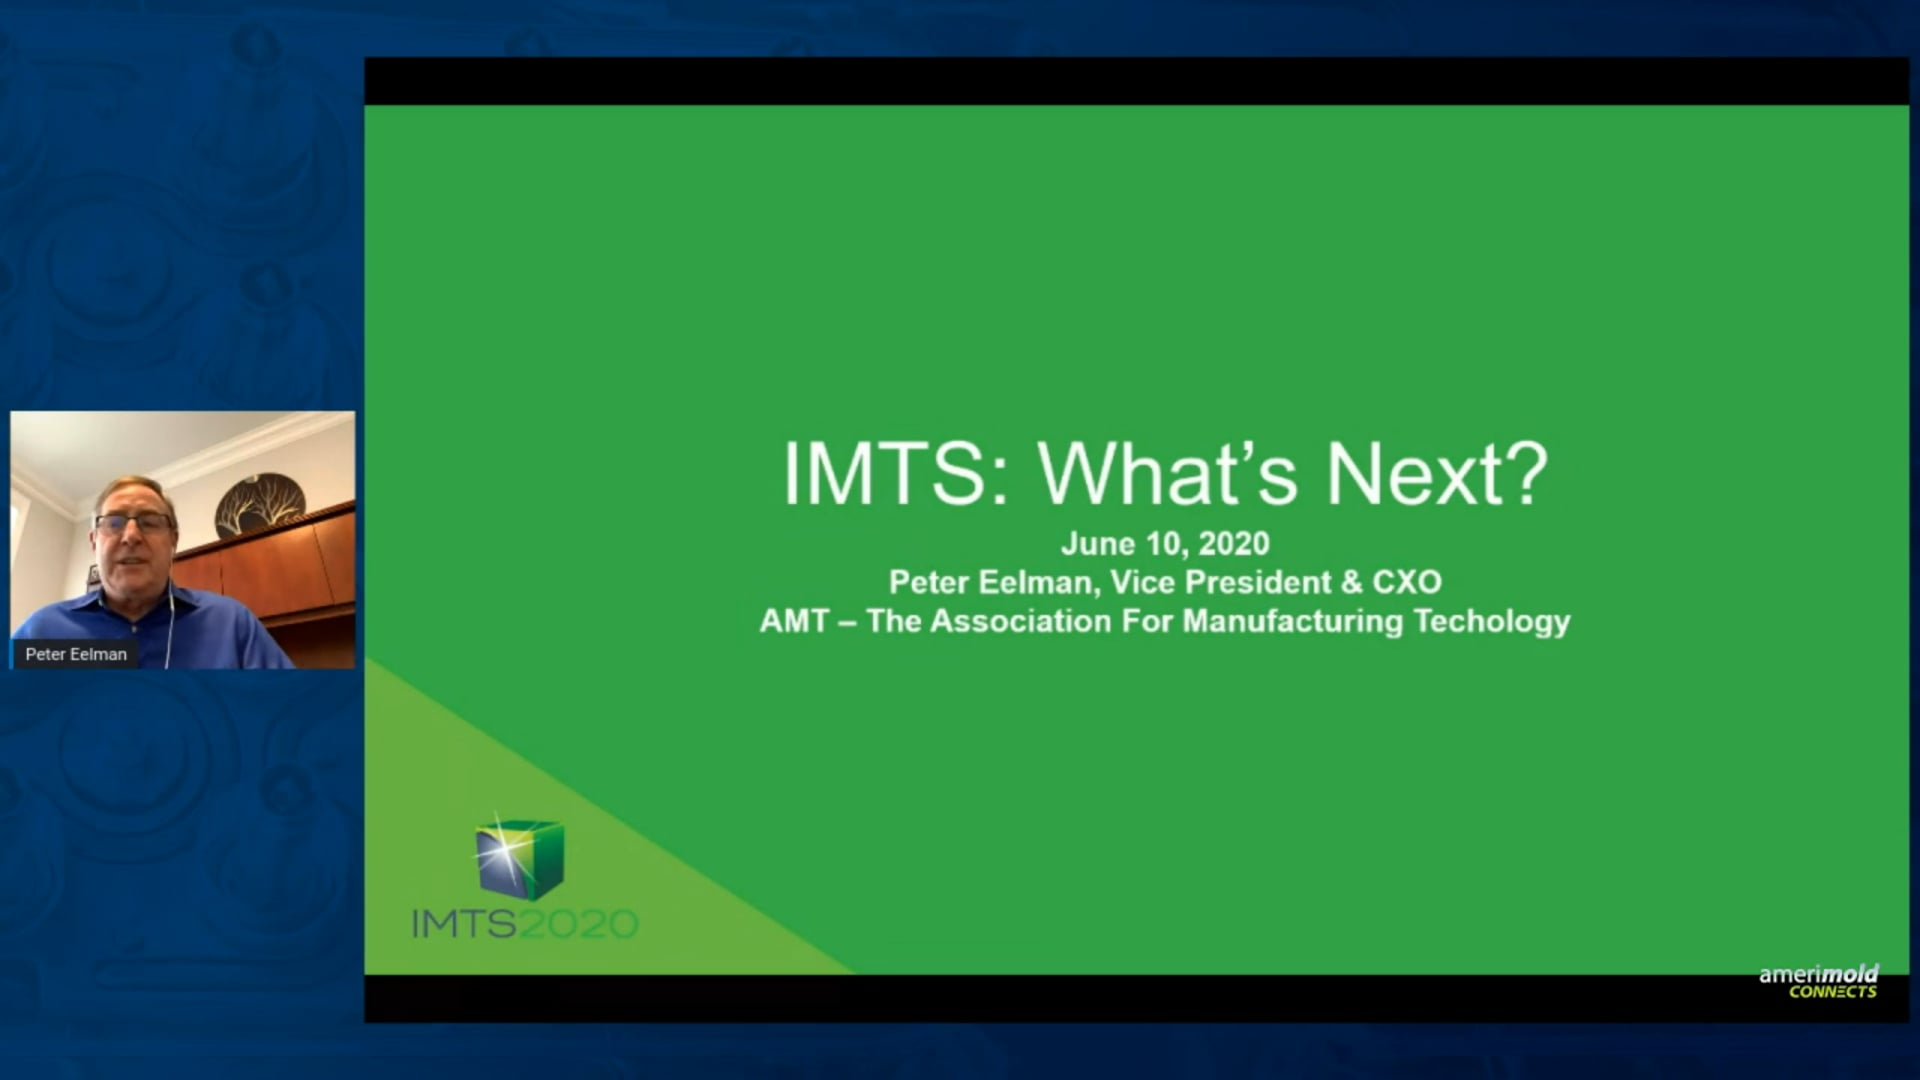 AMT: 2020 Metalworking Industry Outlook and IMTS